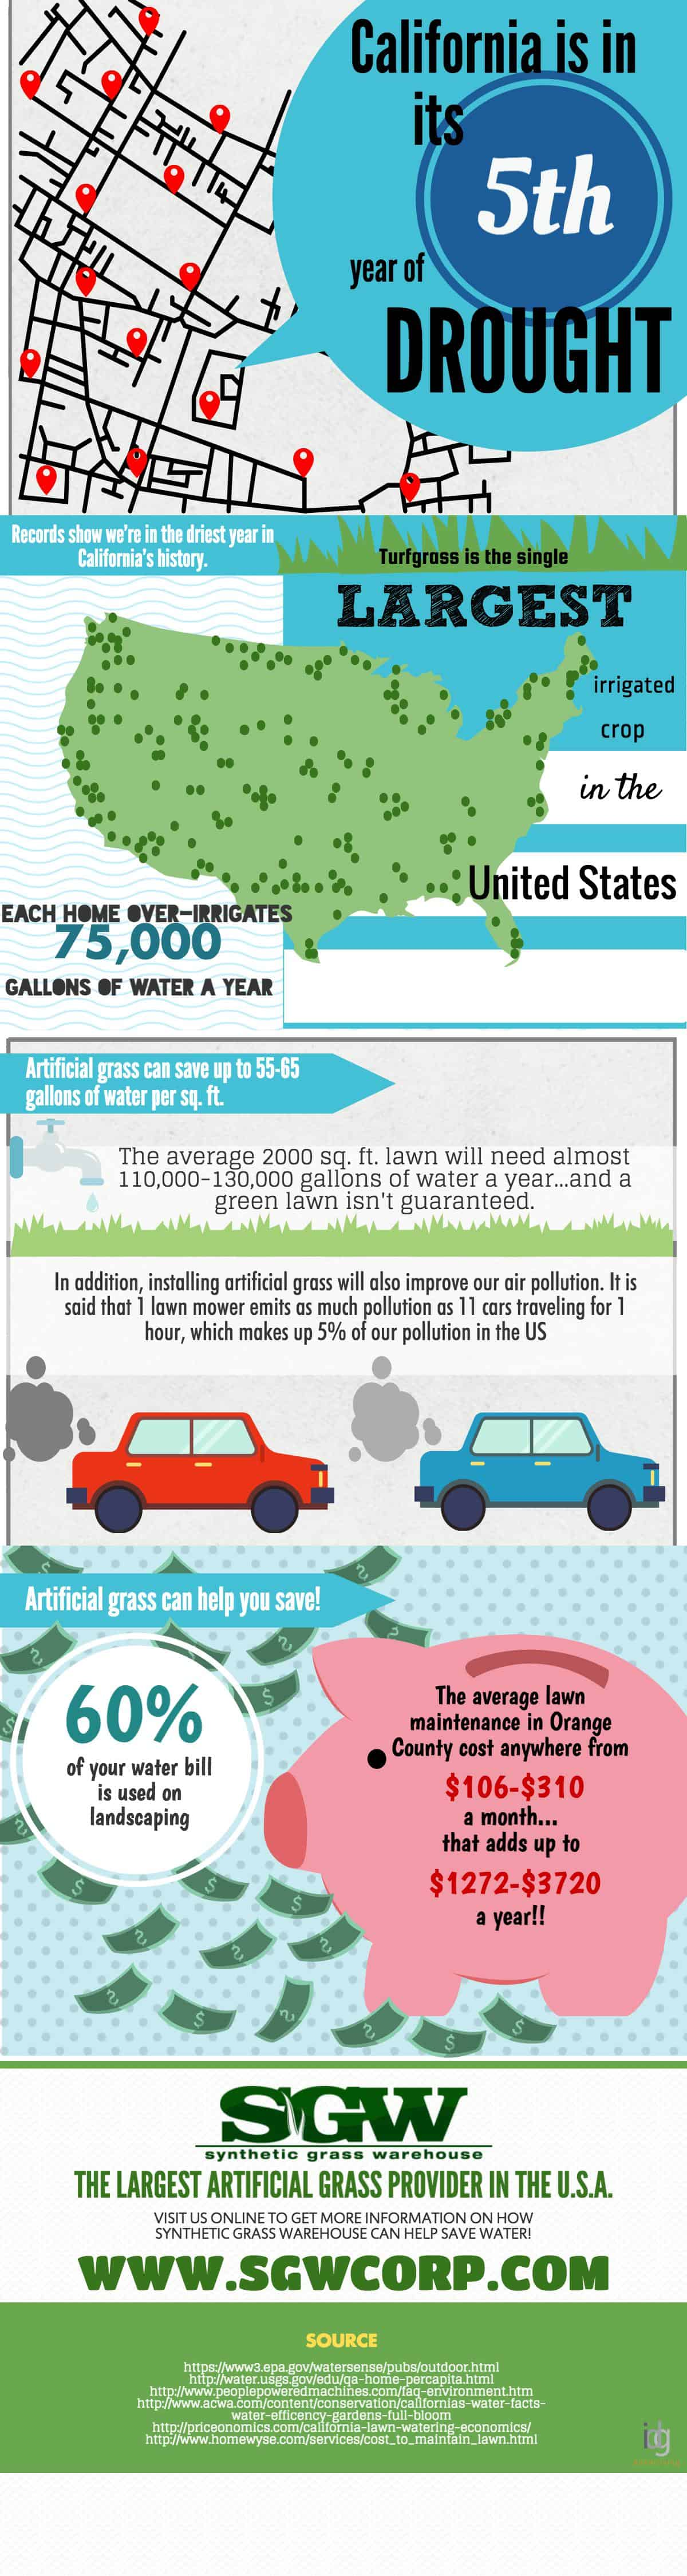 sgw-drought-infographic